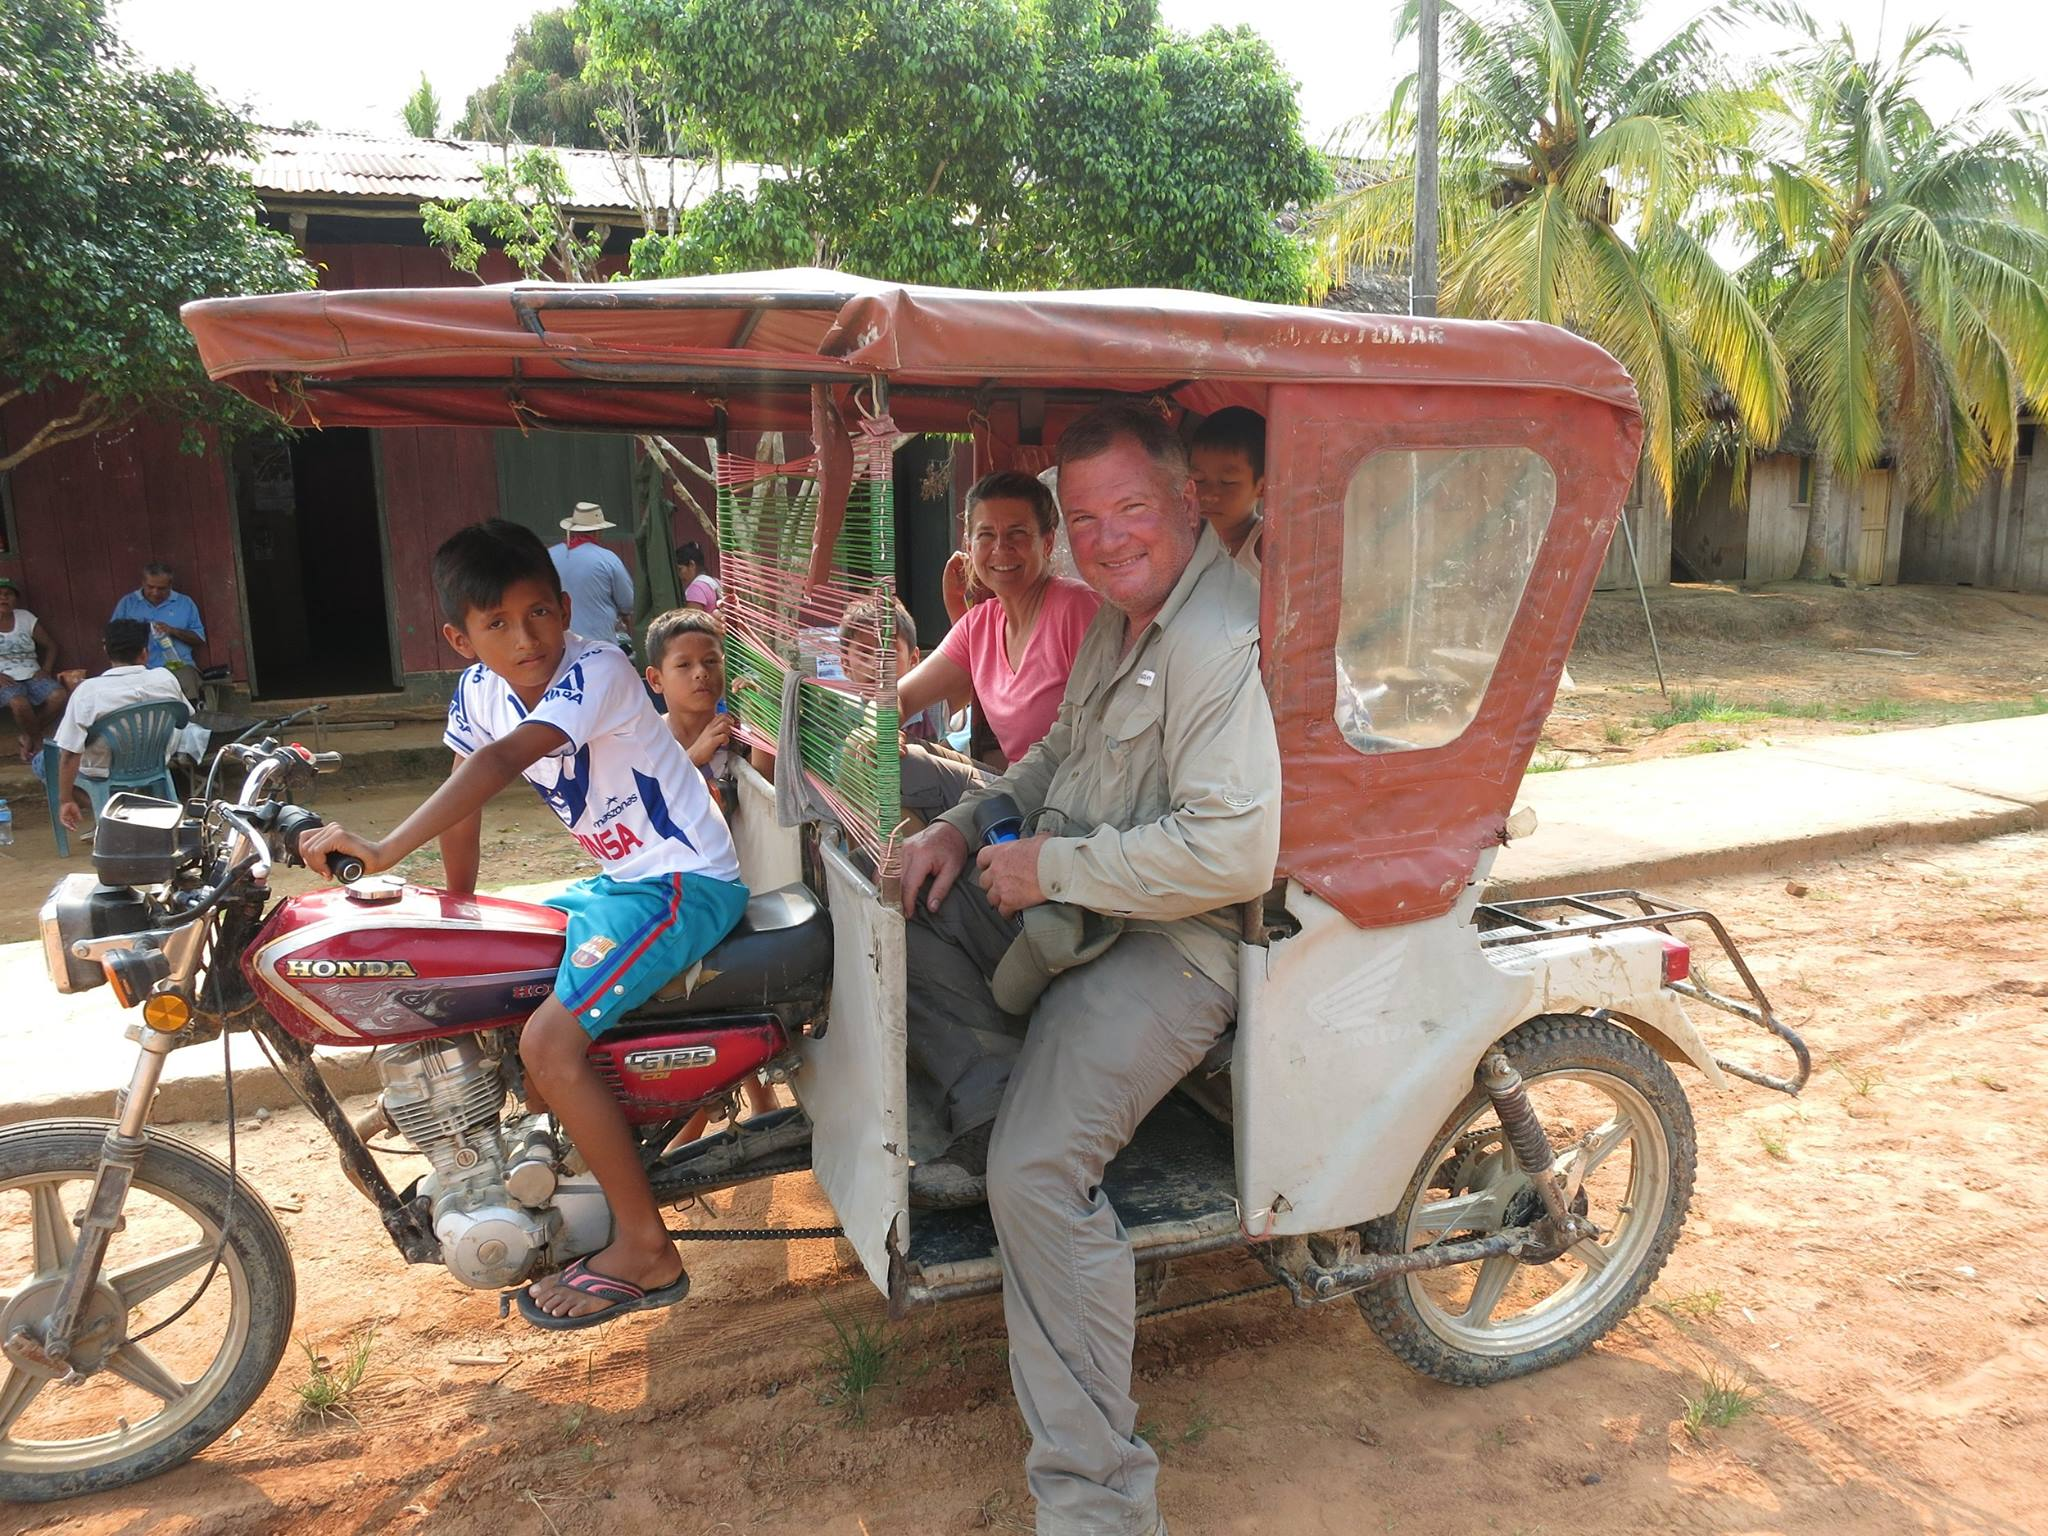 Motor taxi operated by a 12 yr old!